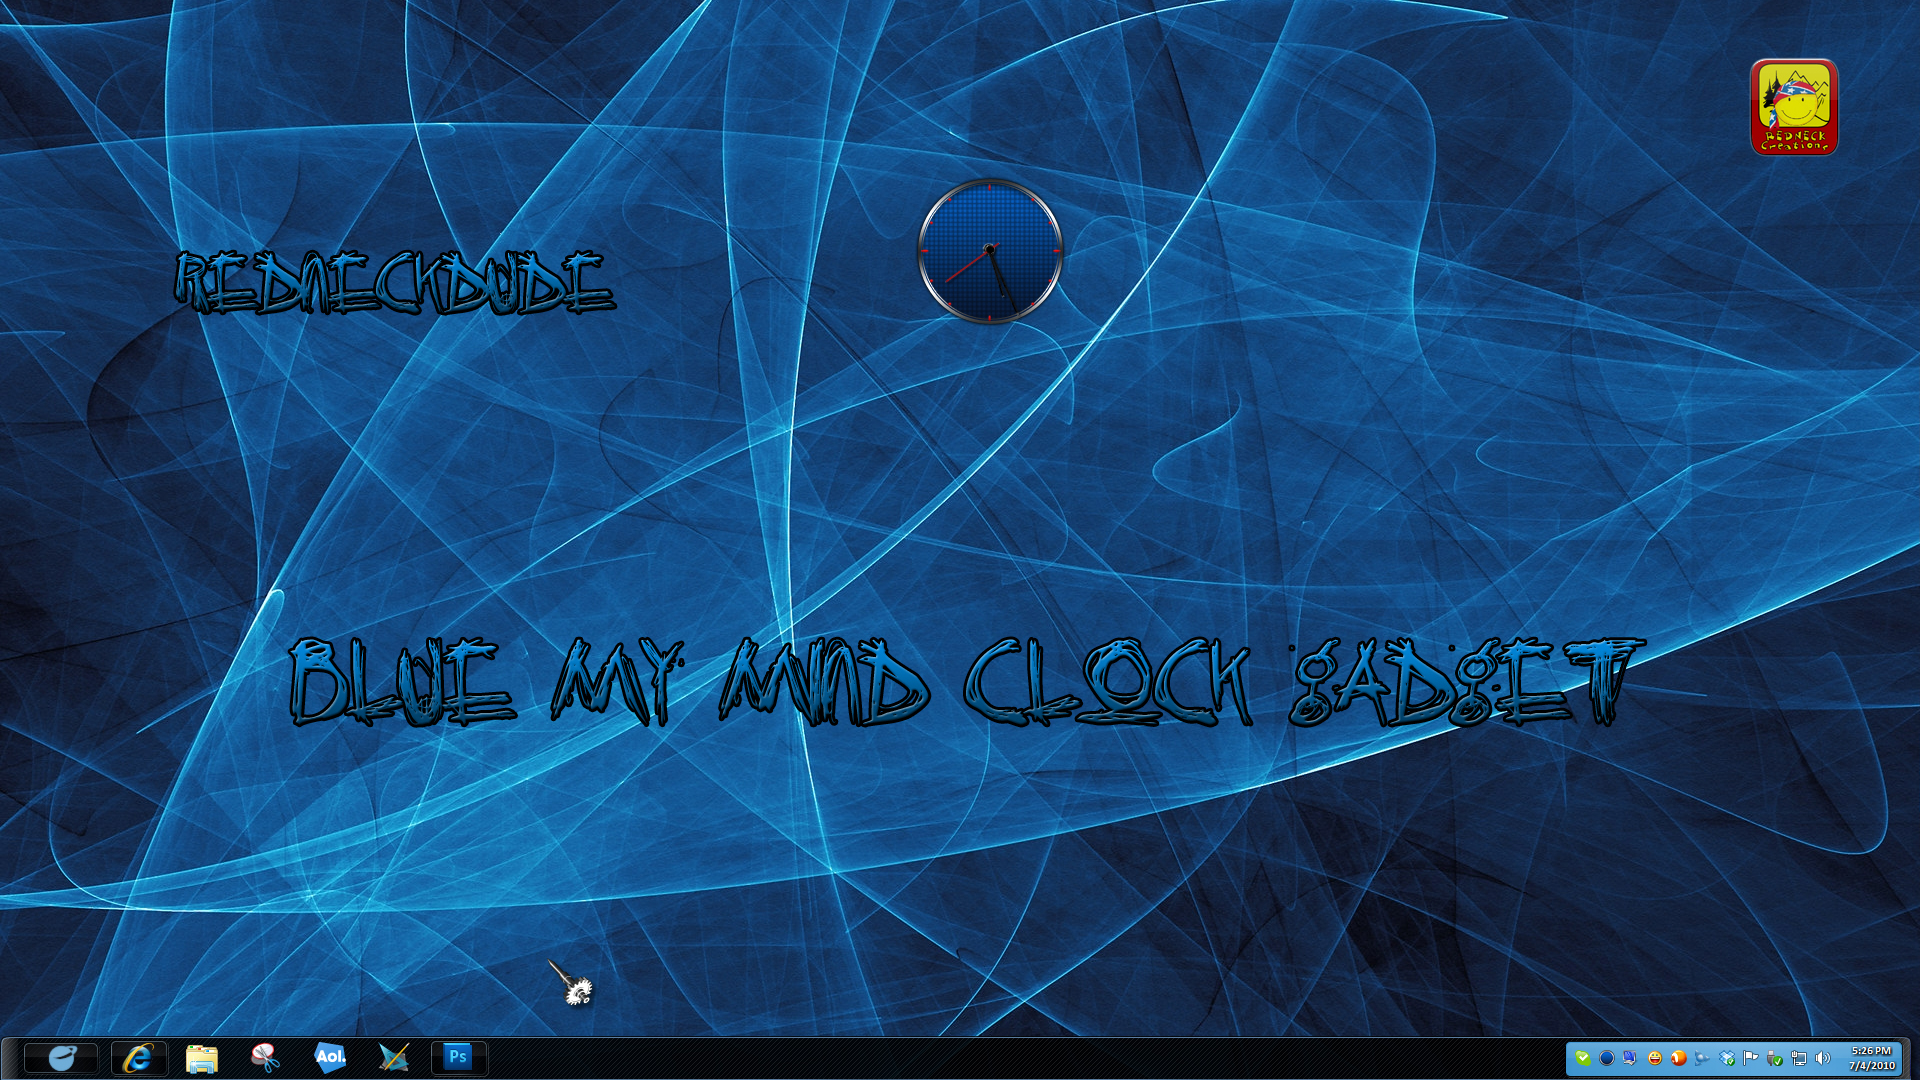 Blue My Mind Clock Gadget